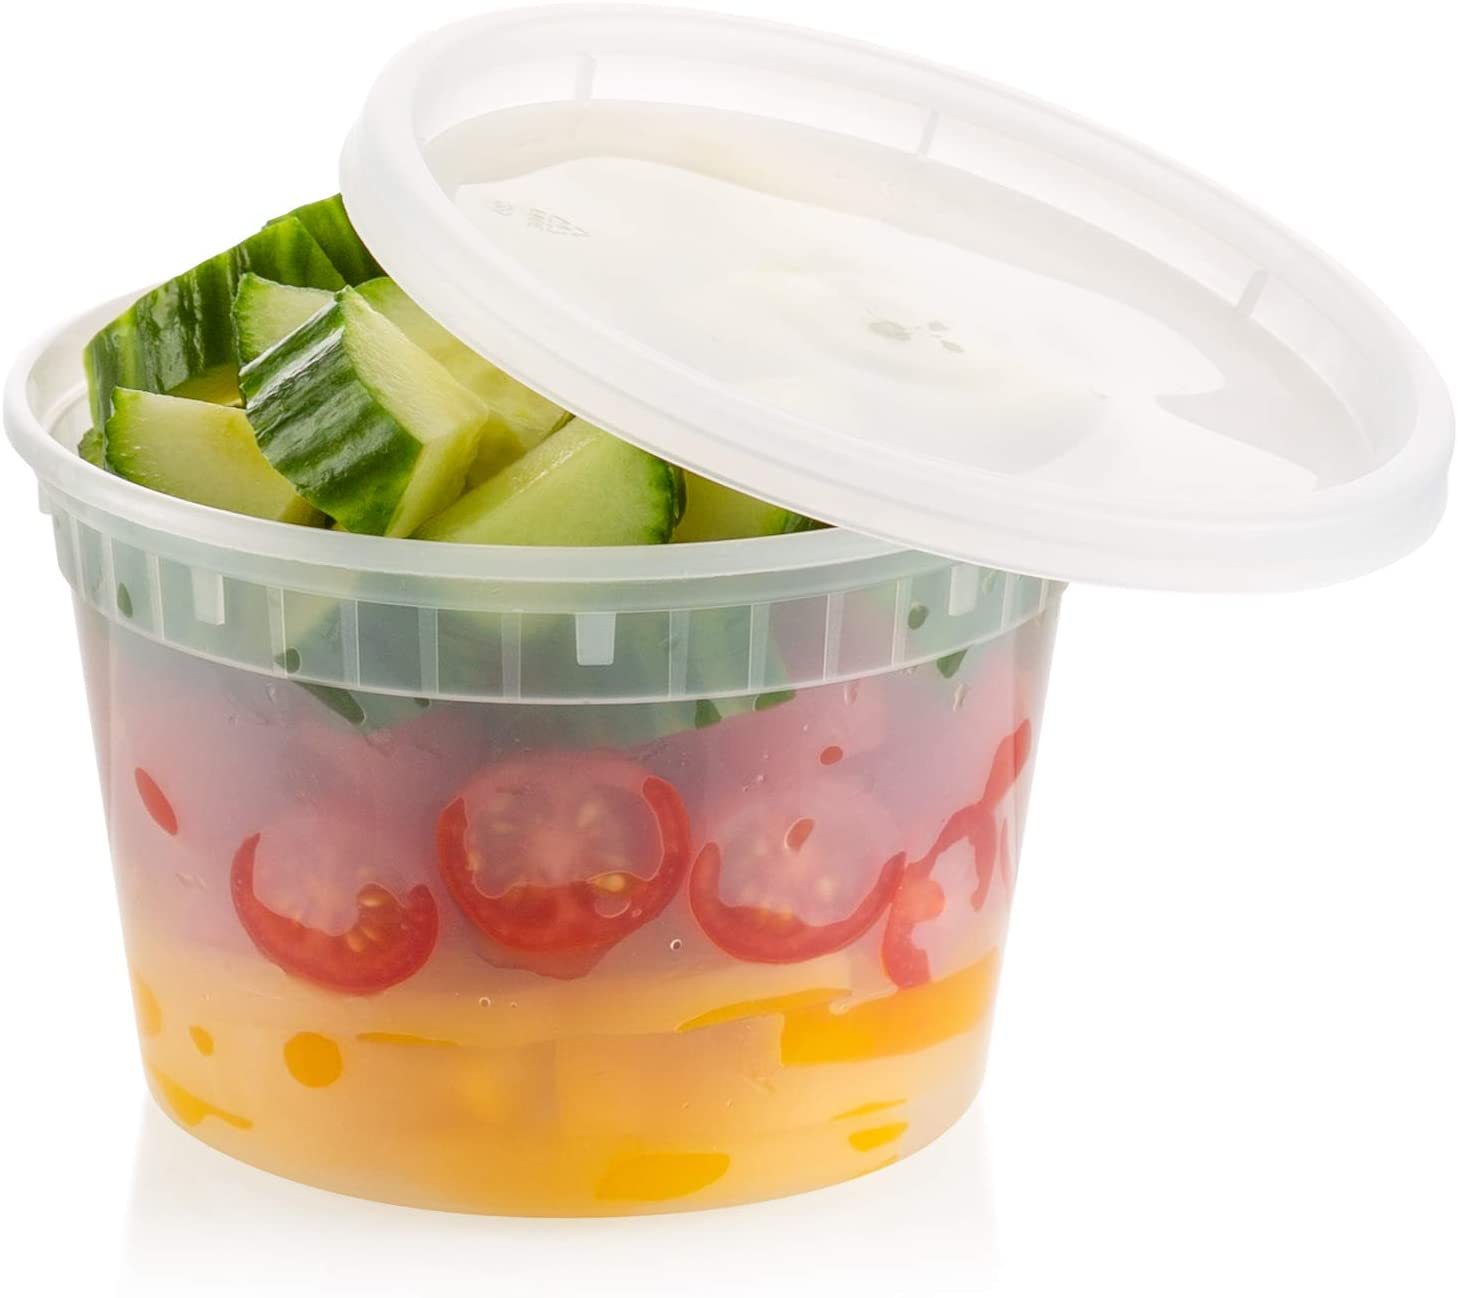 ZEML 16 oz. Deli Food Storage Containers With Leak-proof Lids - 24 Sets